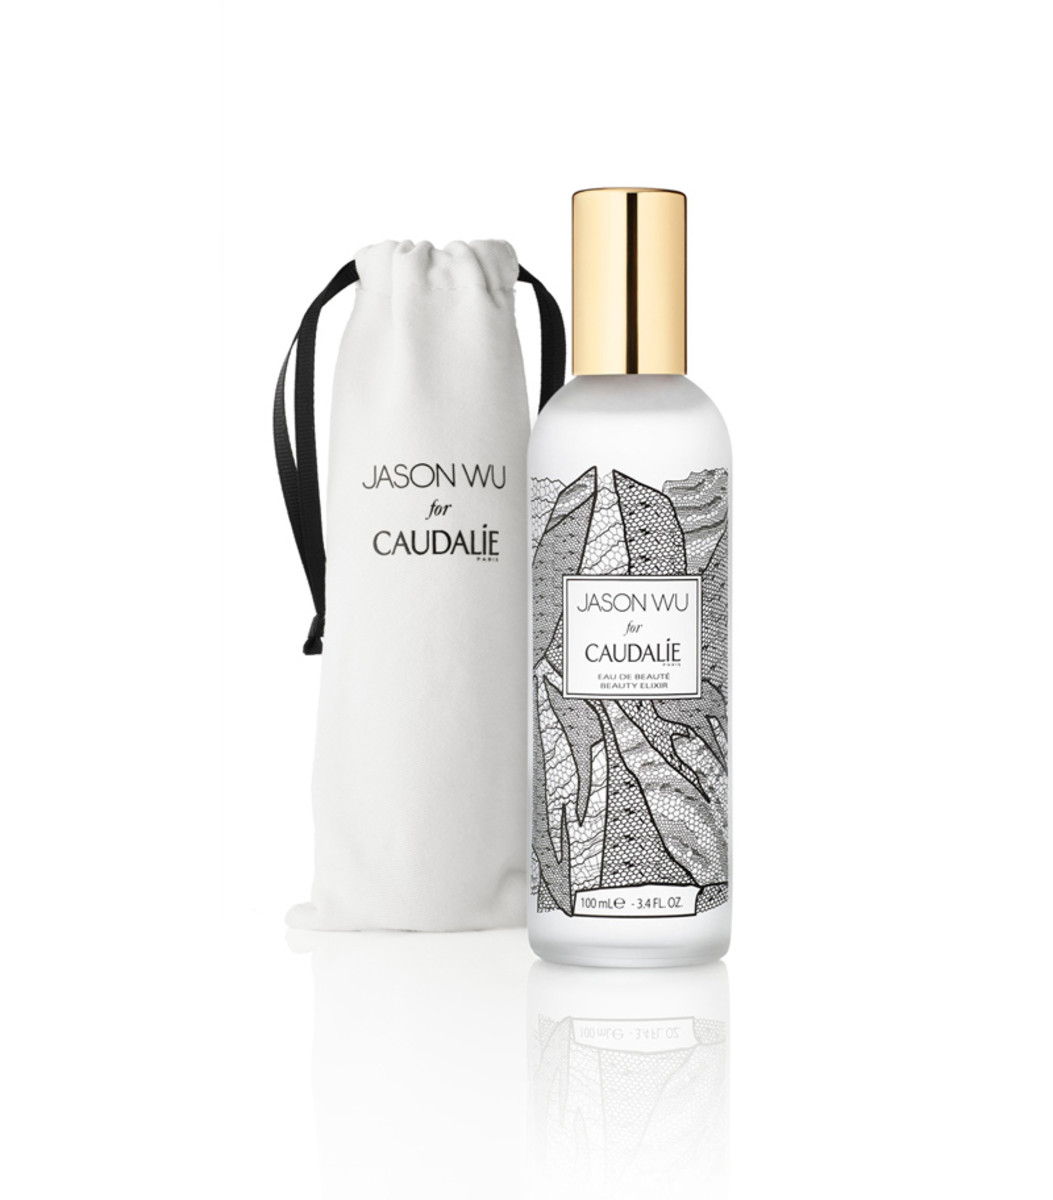 Jason Wu for Caudalie Beauty Elixir